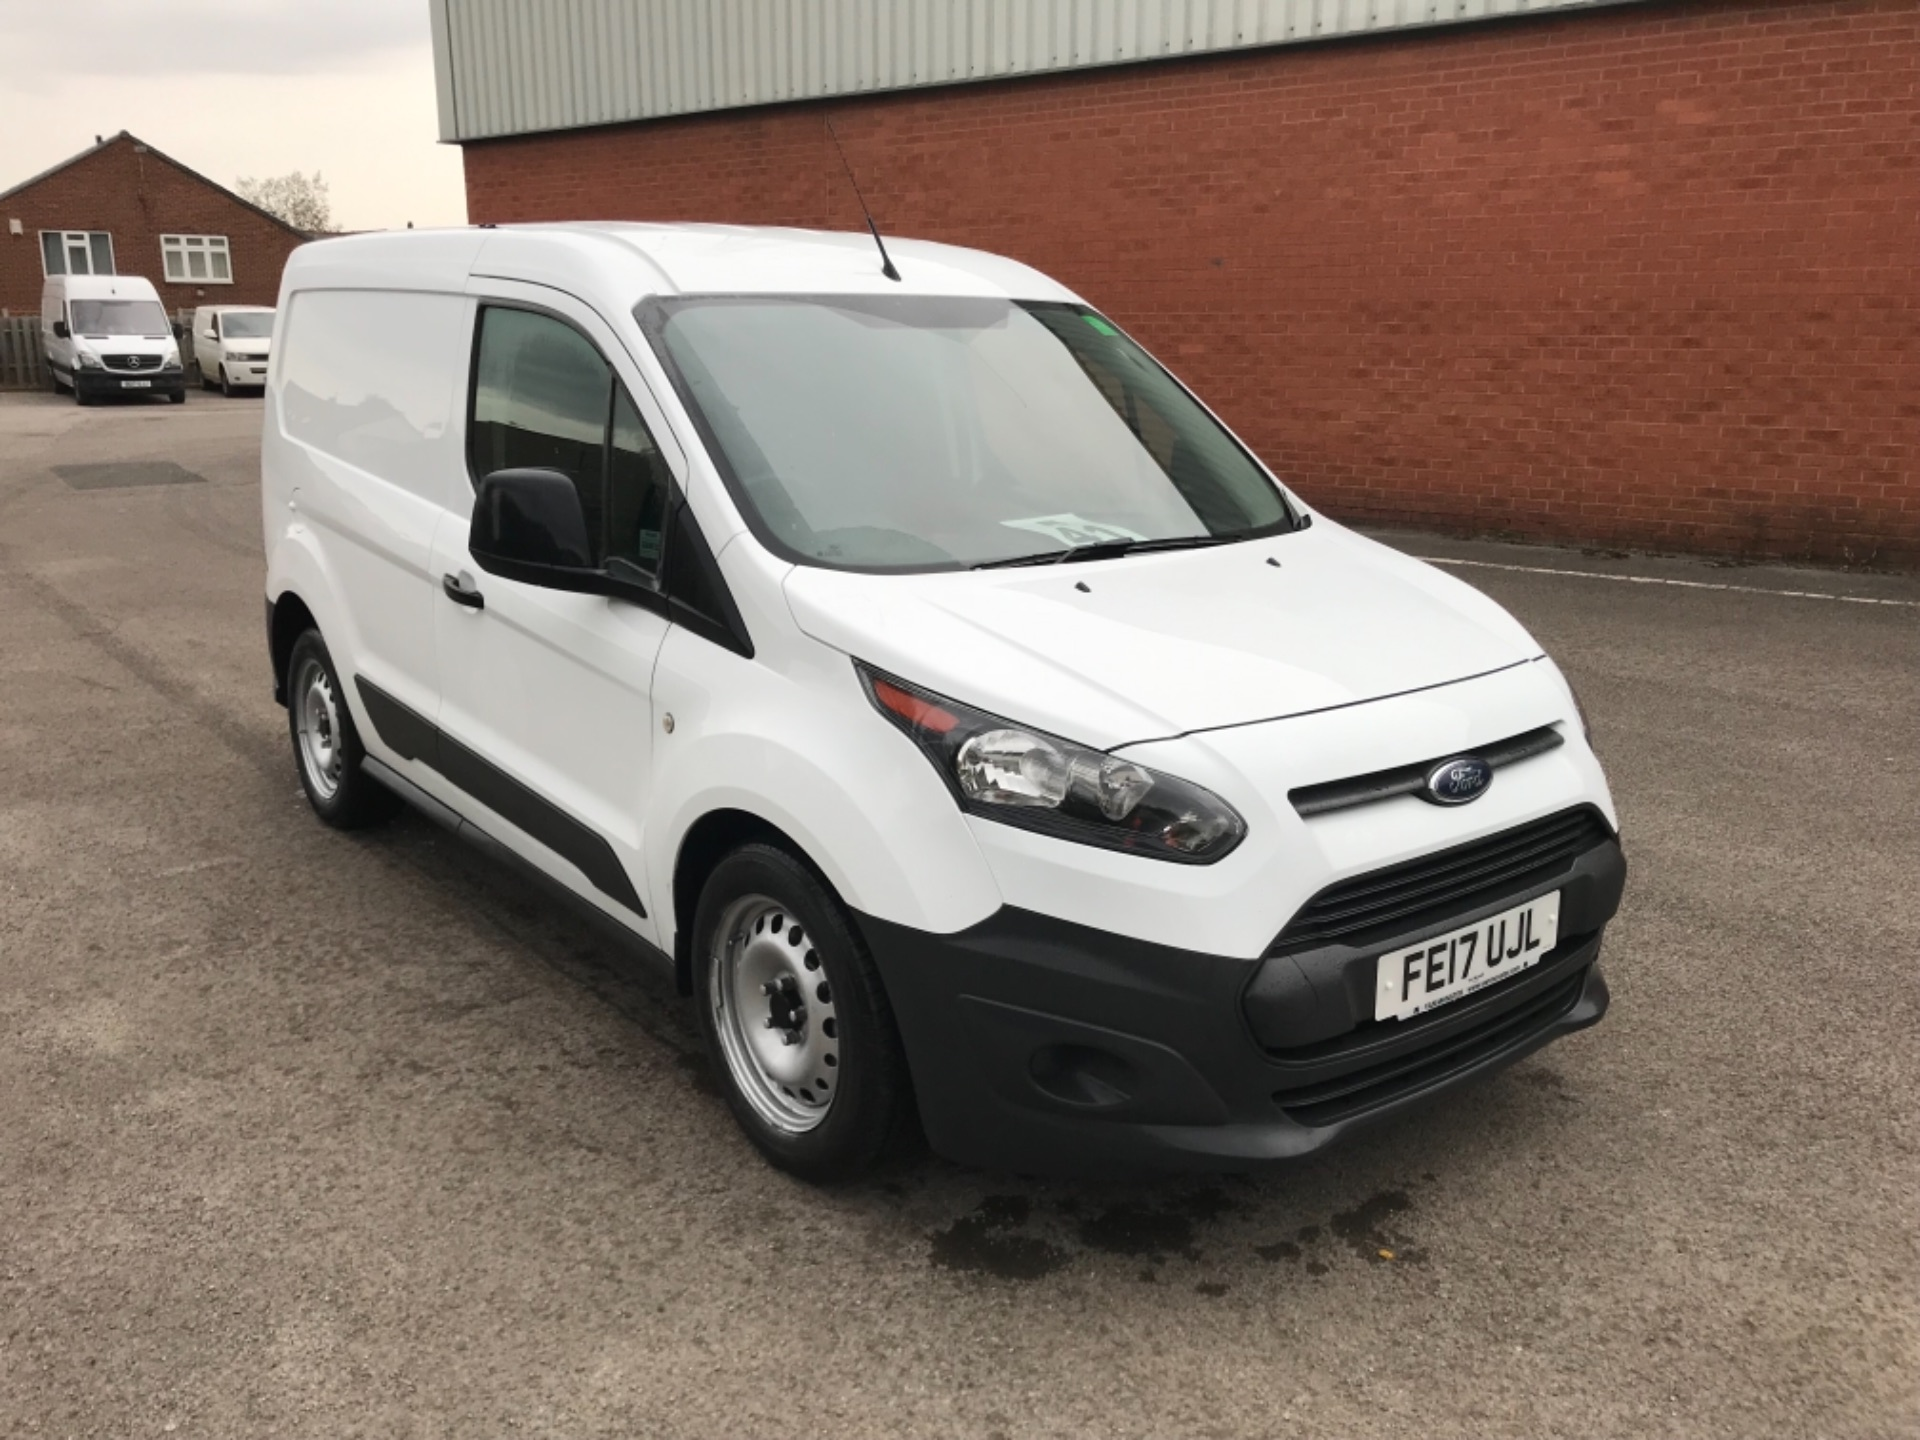 2017 Ford Transit Connect L1 1.5 Tdci 75Ps Van EURO 6 SPEED LIMITED TO 70MPH (FE17UJL)